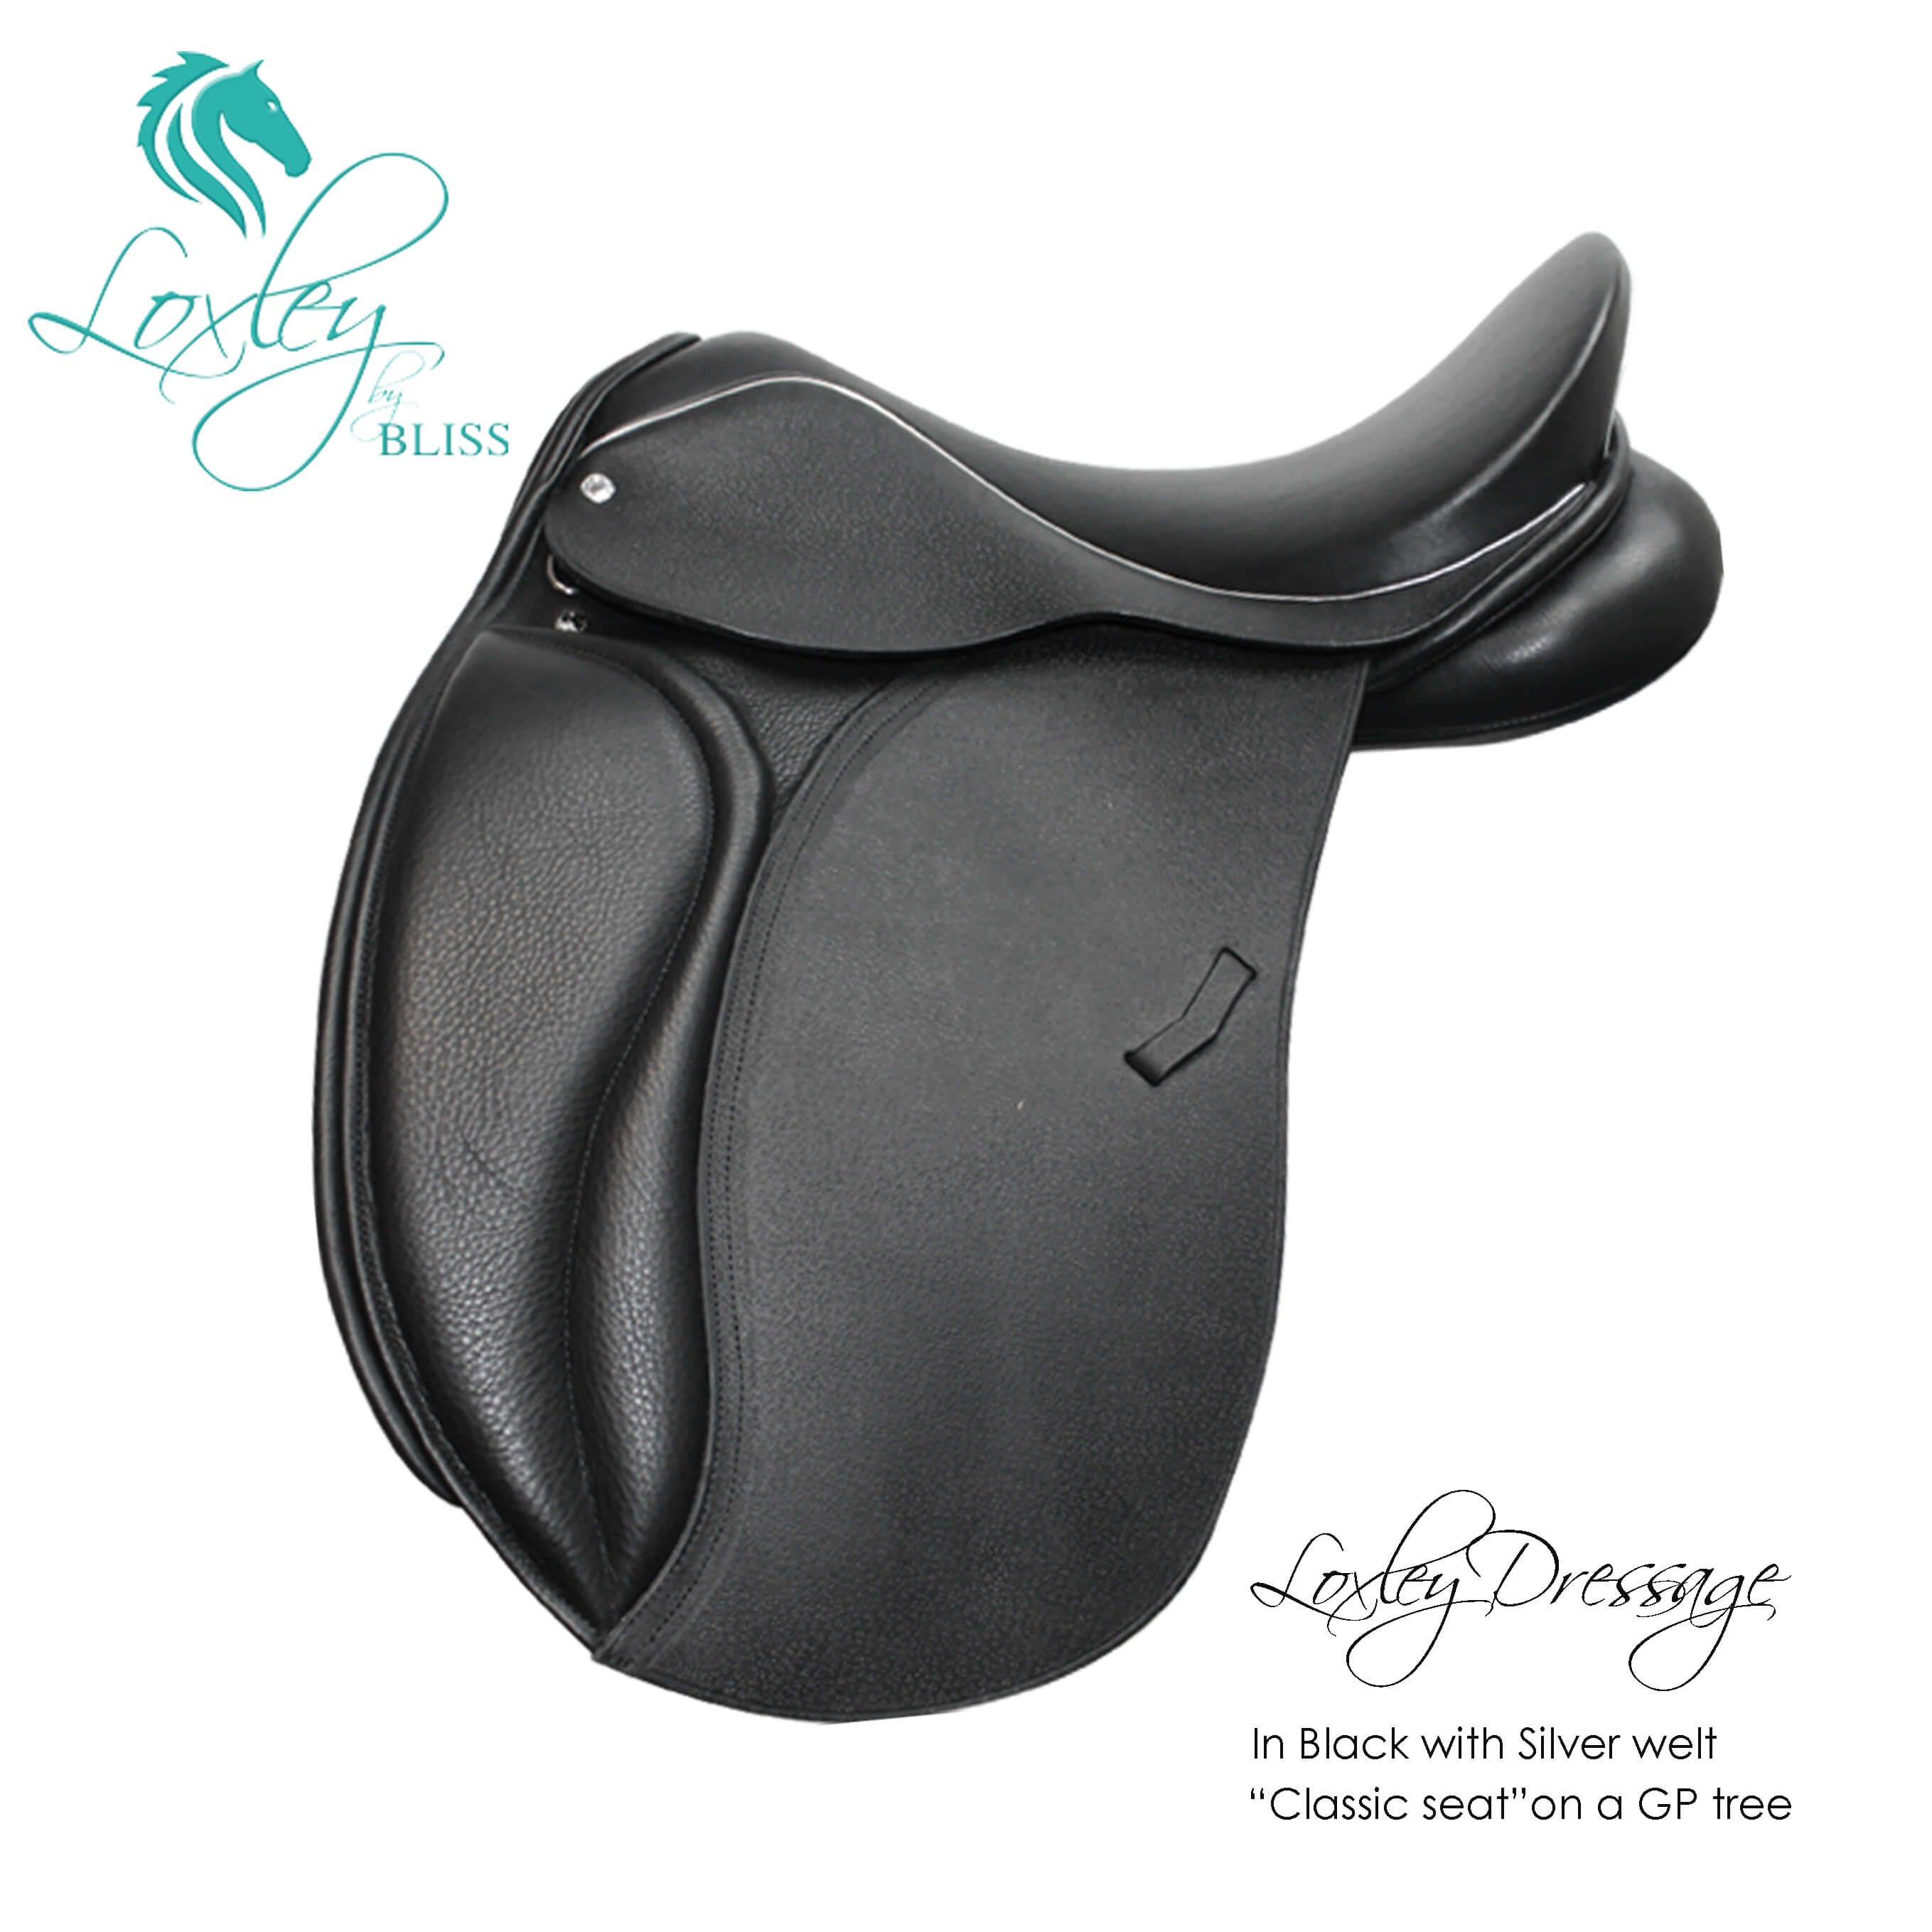 Loxley Dressage black Silver welt classic seat gp tree